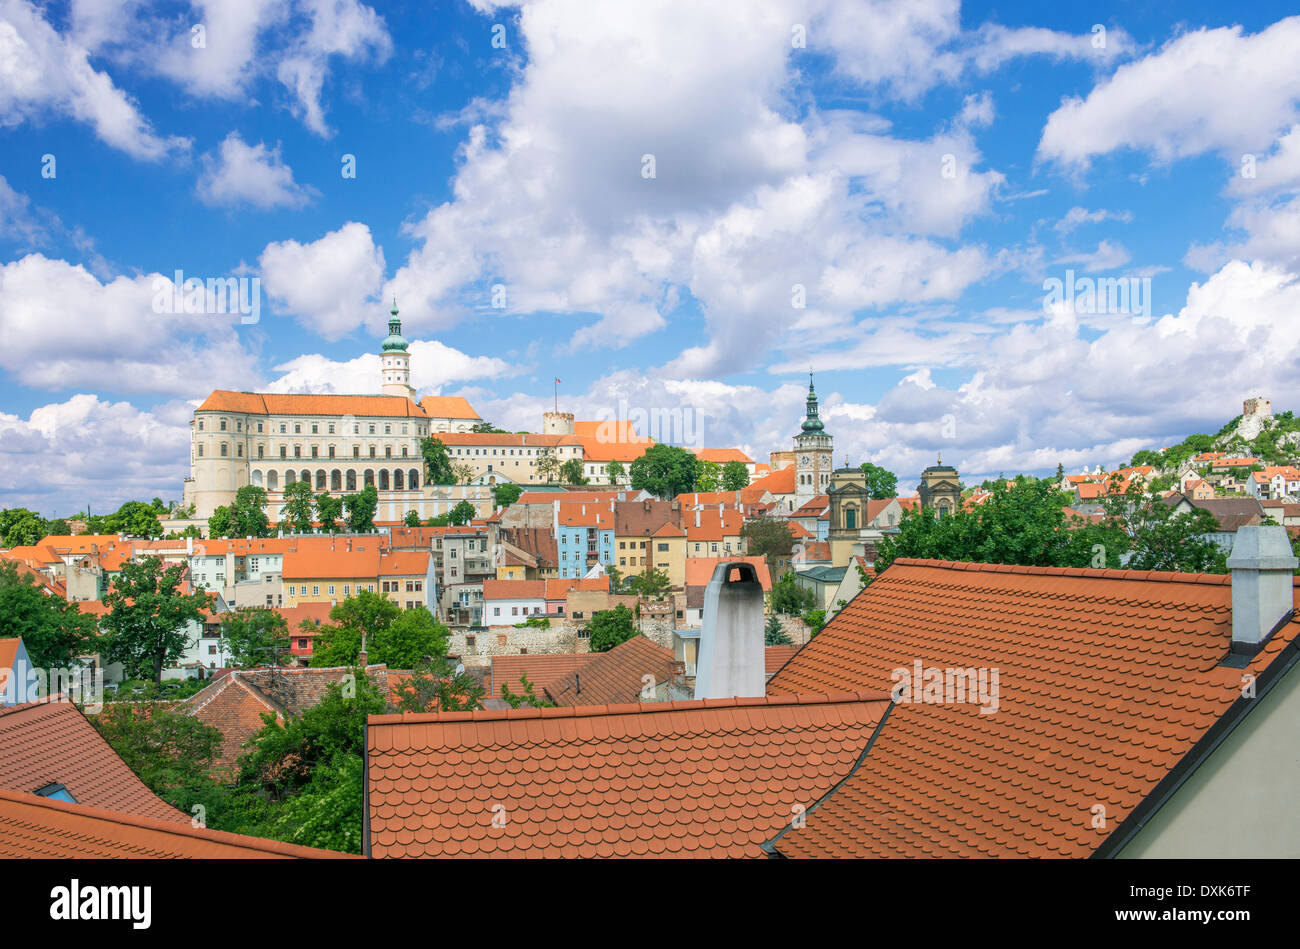 Rooftops and castle, Prague, Czech Republic - Stock Image